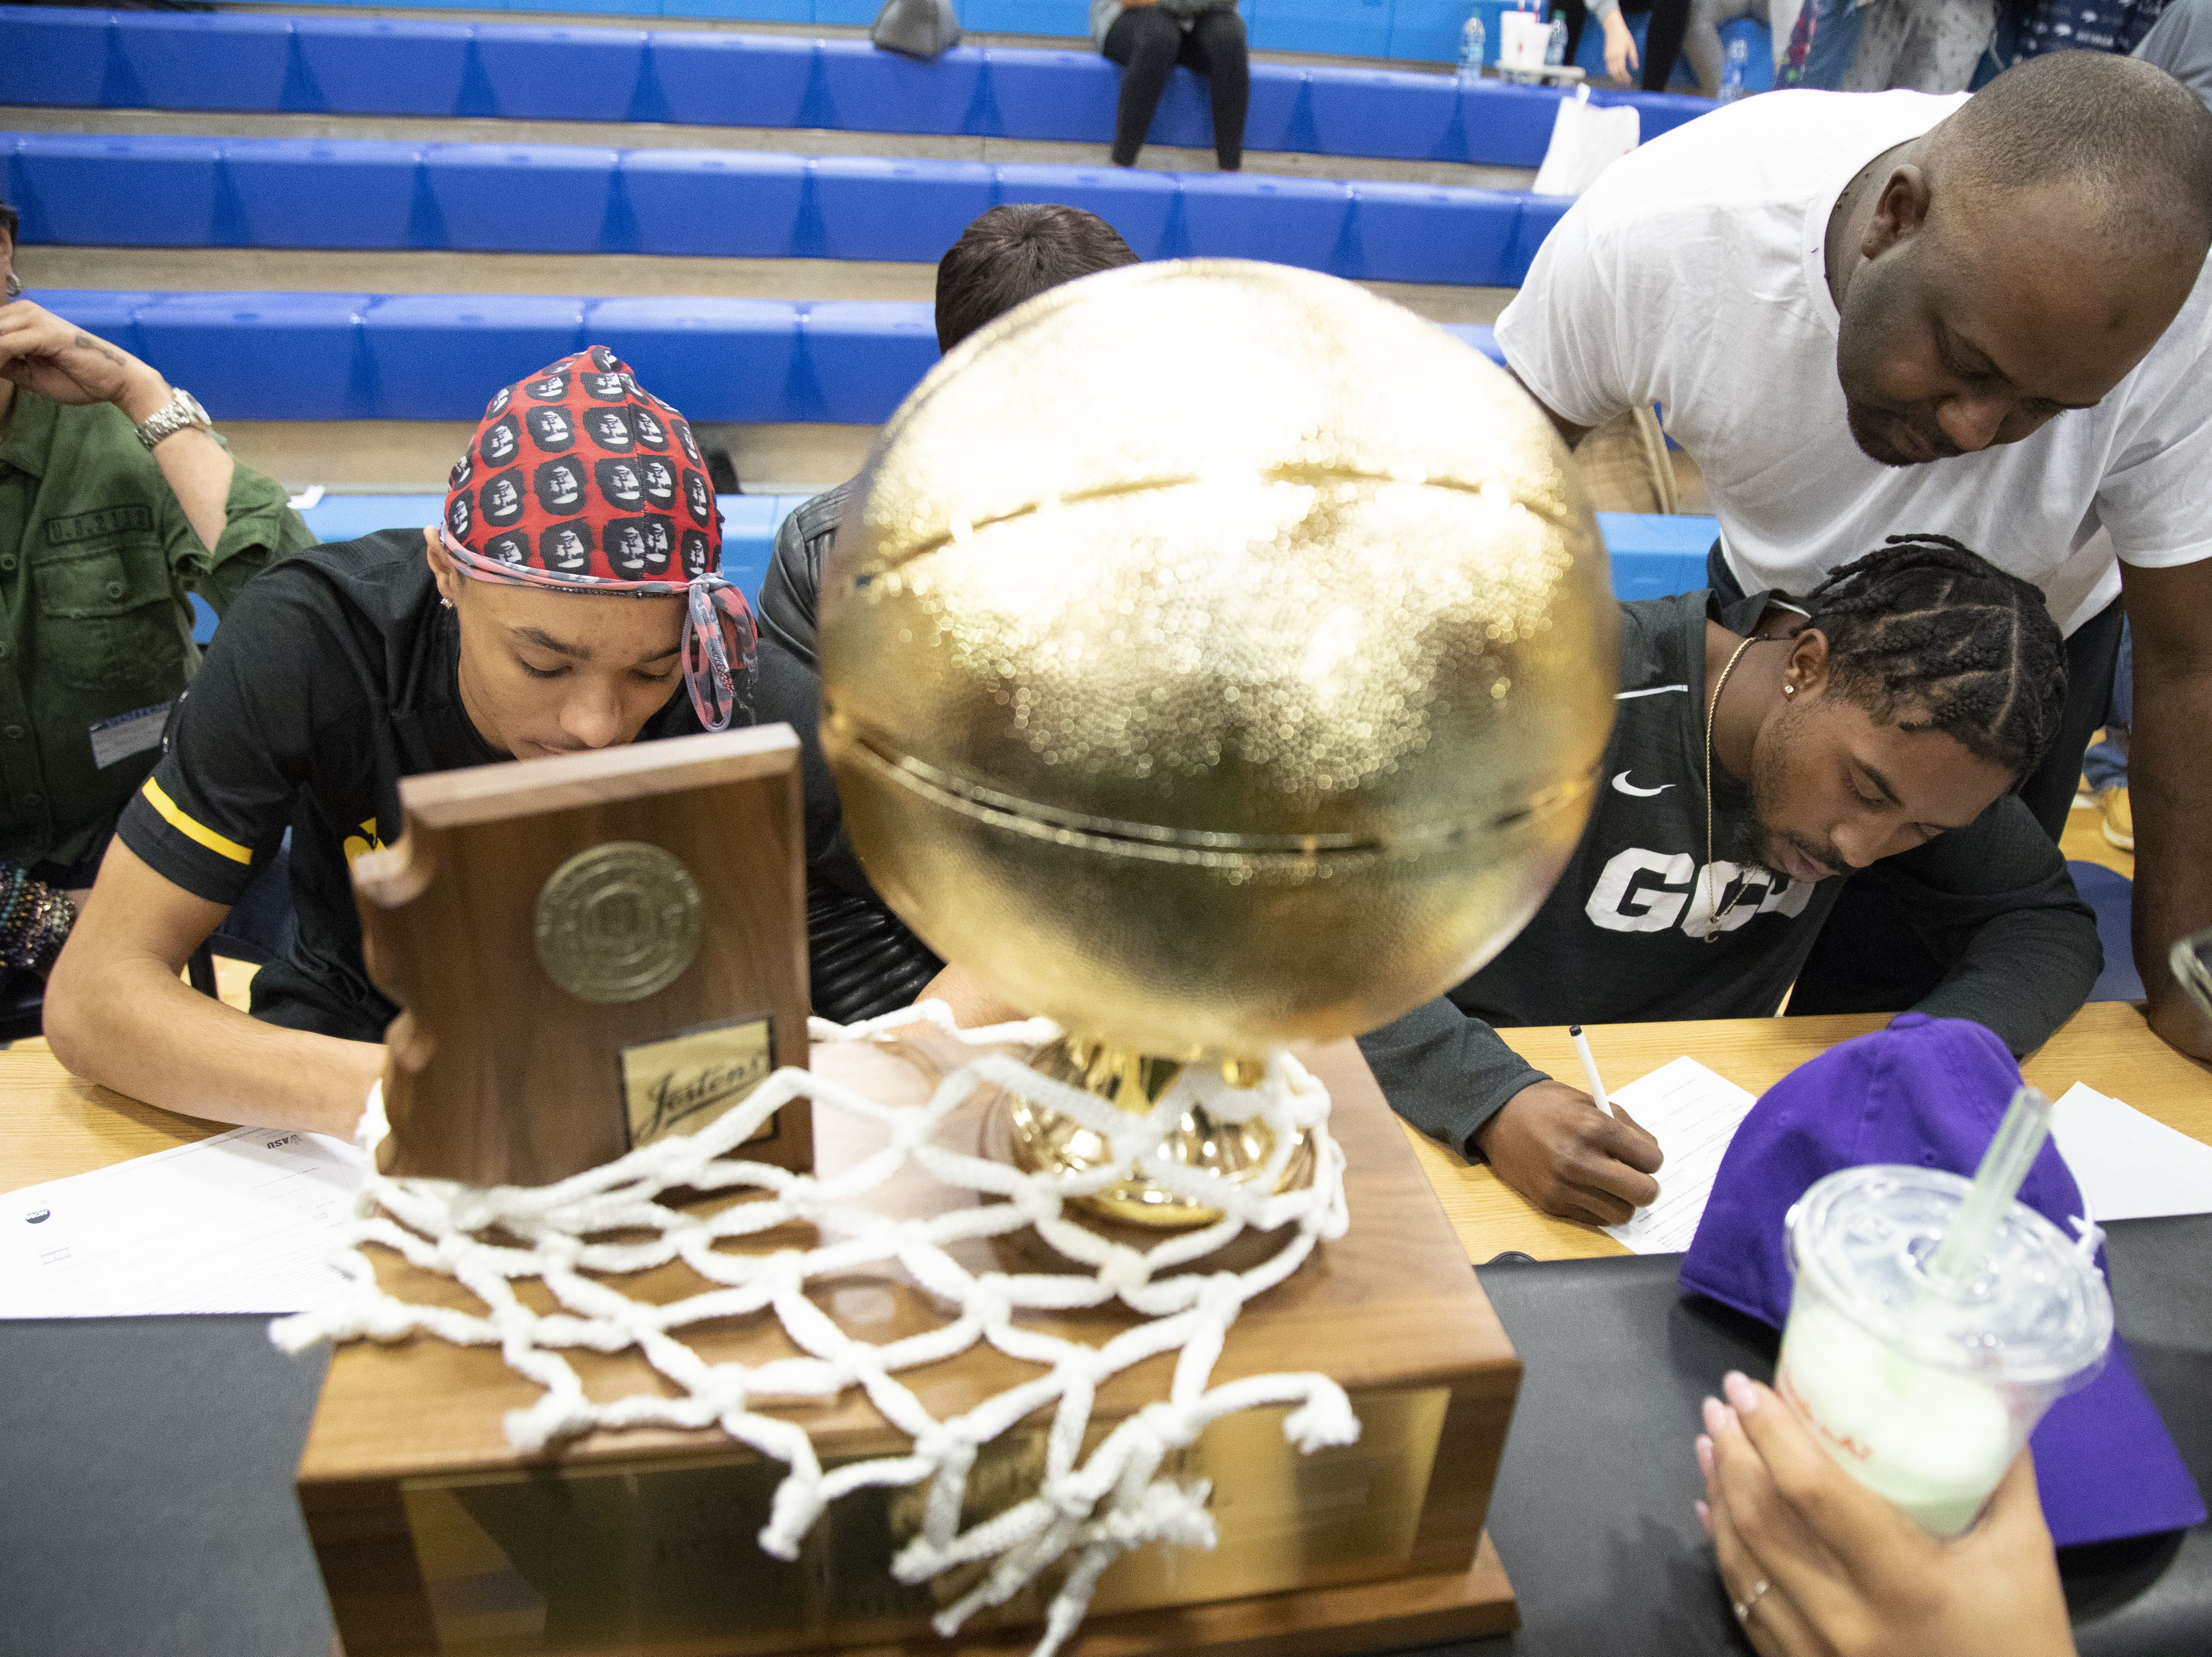 Students cheer Shadow Mountain High School senior's guard Jaelen House, on left  and Jovan Blacksher during the signing ceremony at the school gym. Jaelen House signs with Arizona State, and Jovan Blacksher signs with Grand Canyon University.